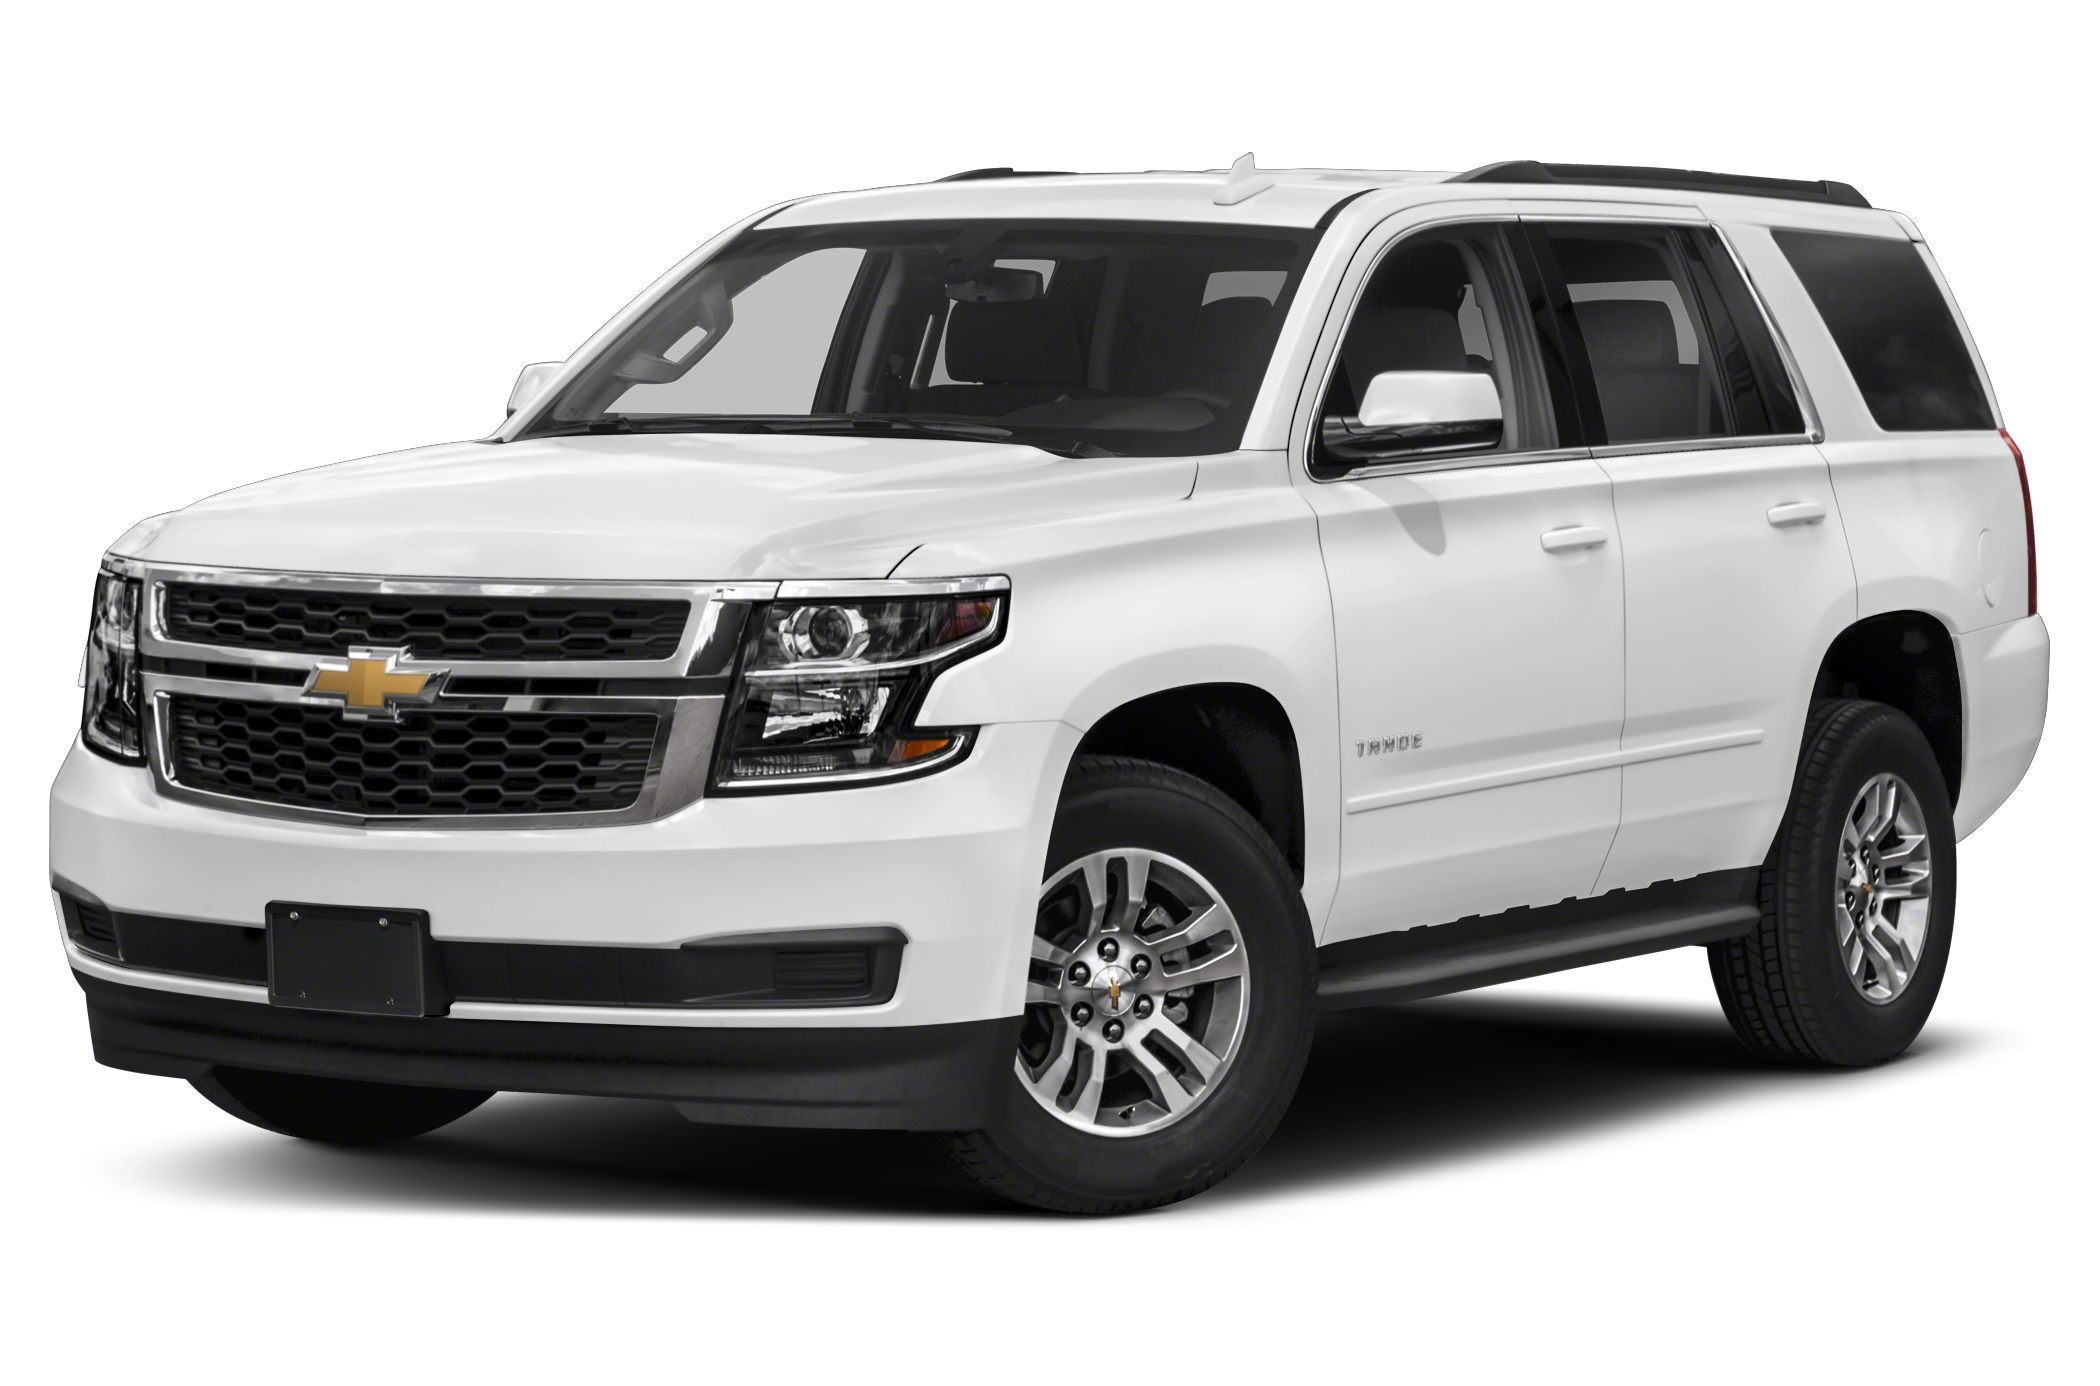 Cars for Sale Near Me Under 3000 Elegant Cars for Sale at Victor Chevrolet In Victor Ny Under 3 000